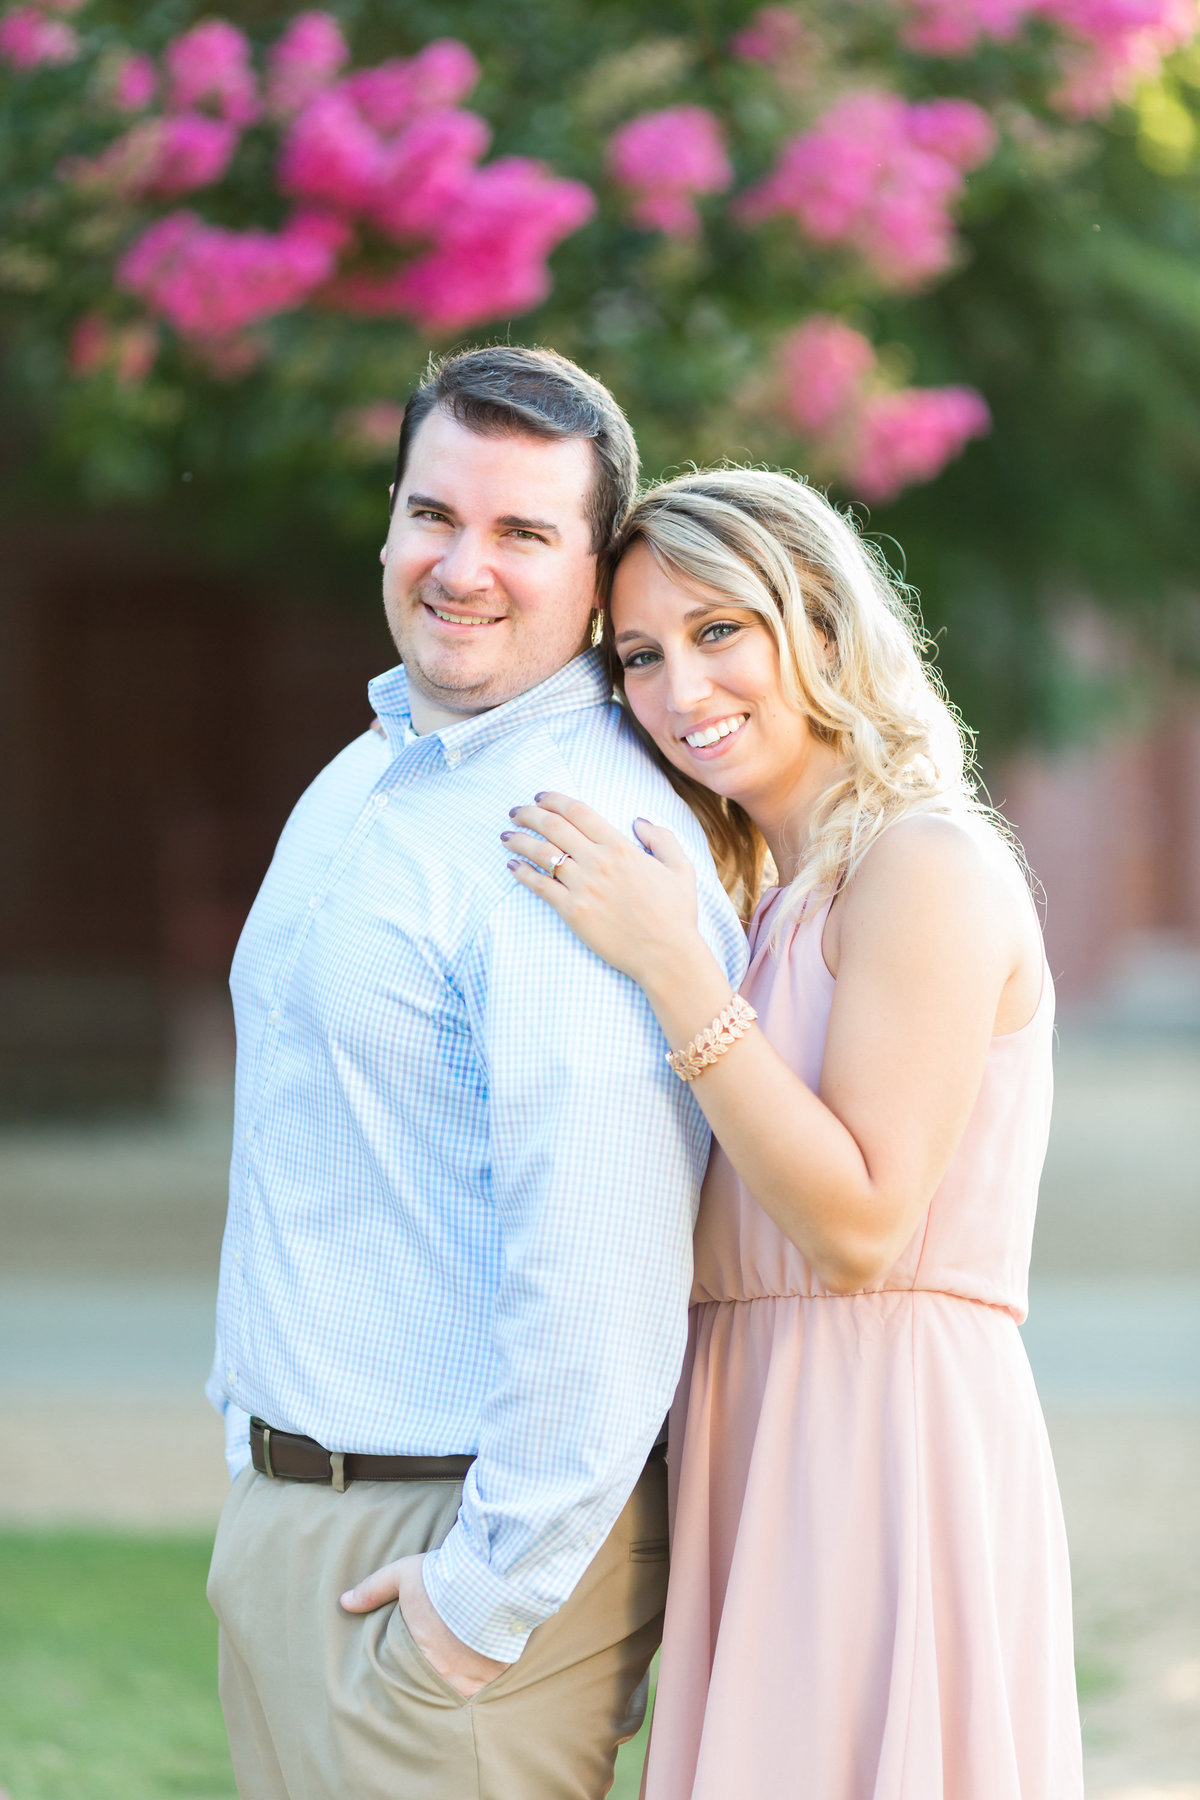 williamsburg-virginia-engagement-session-010